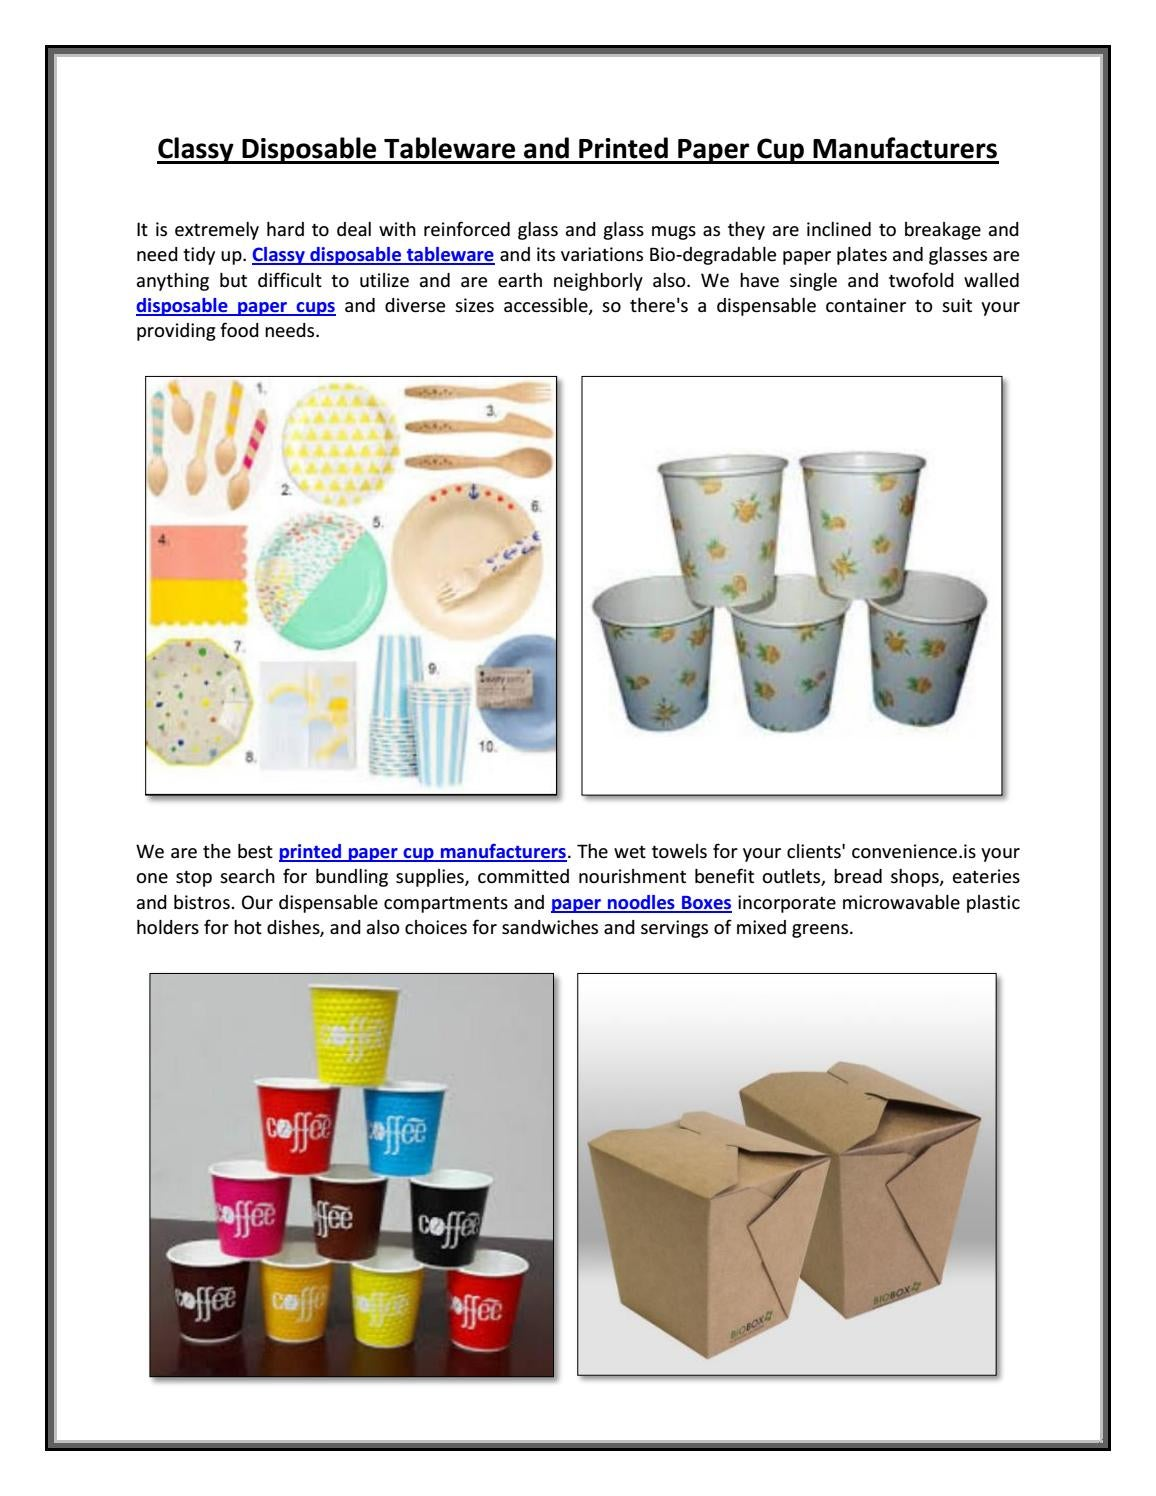 Classy Disposable Tableware and Printed Paper Cup